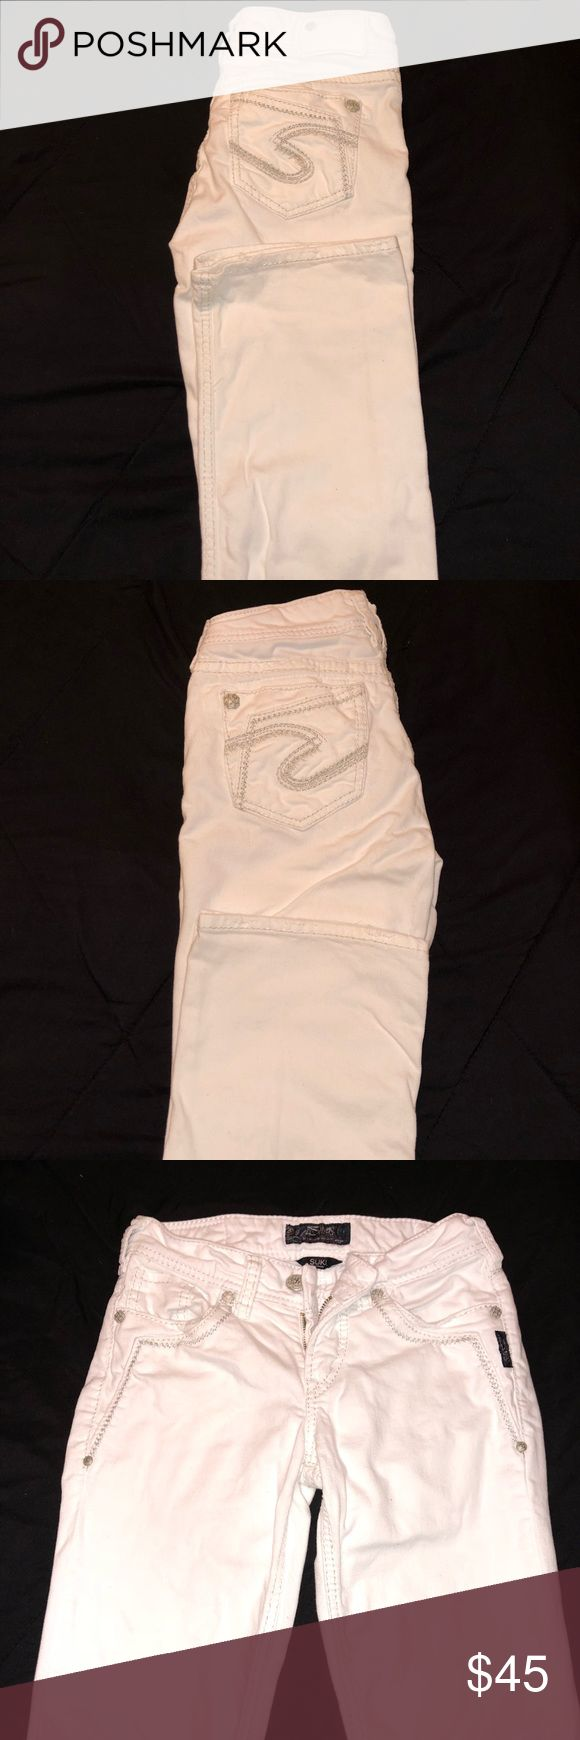 Women's silver jeans Brand new never worn too small for me Smoke and pet free home  Open to all offers Silver Jeans Jeans Boot Cut